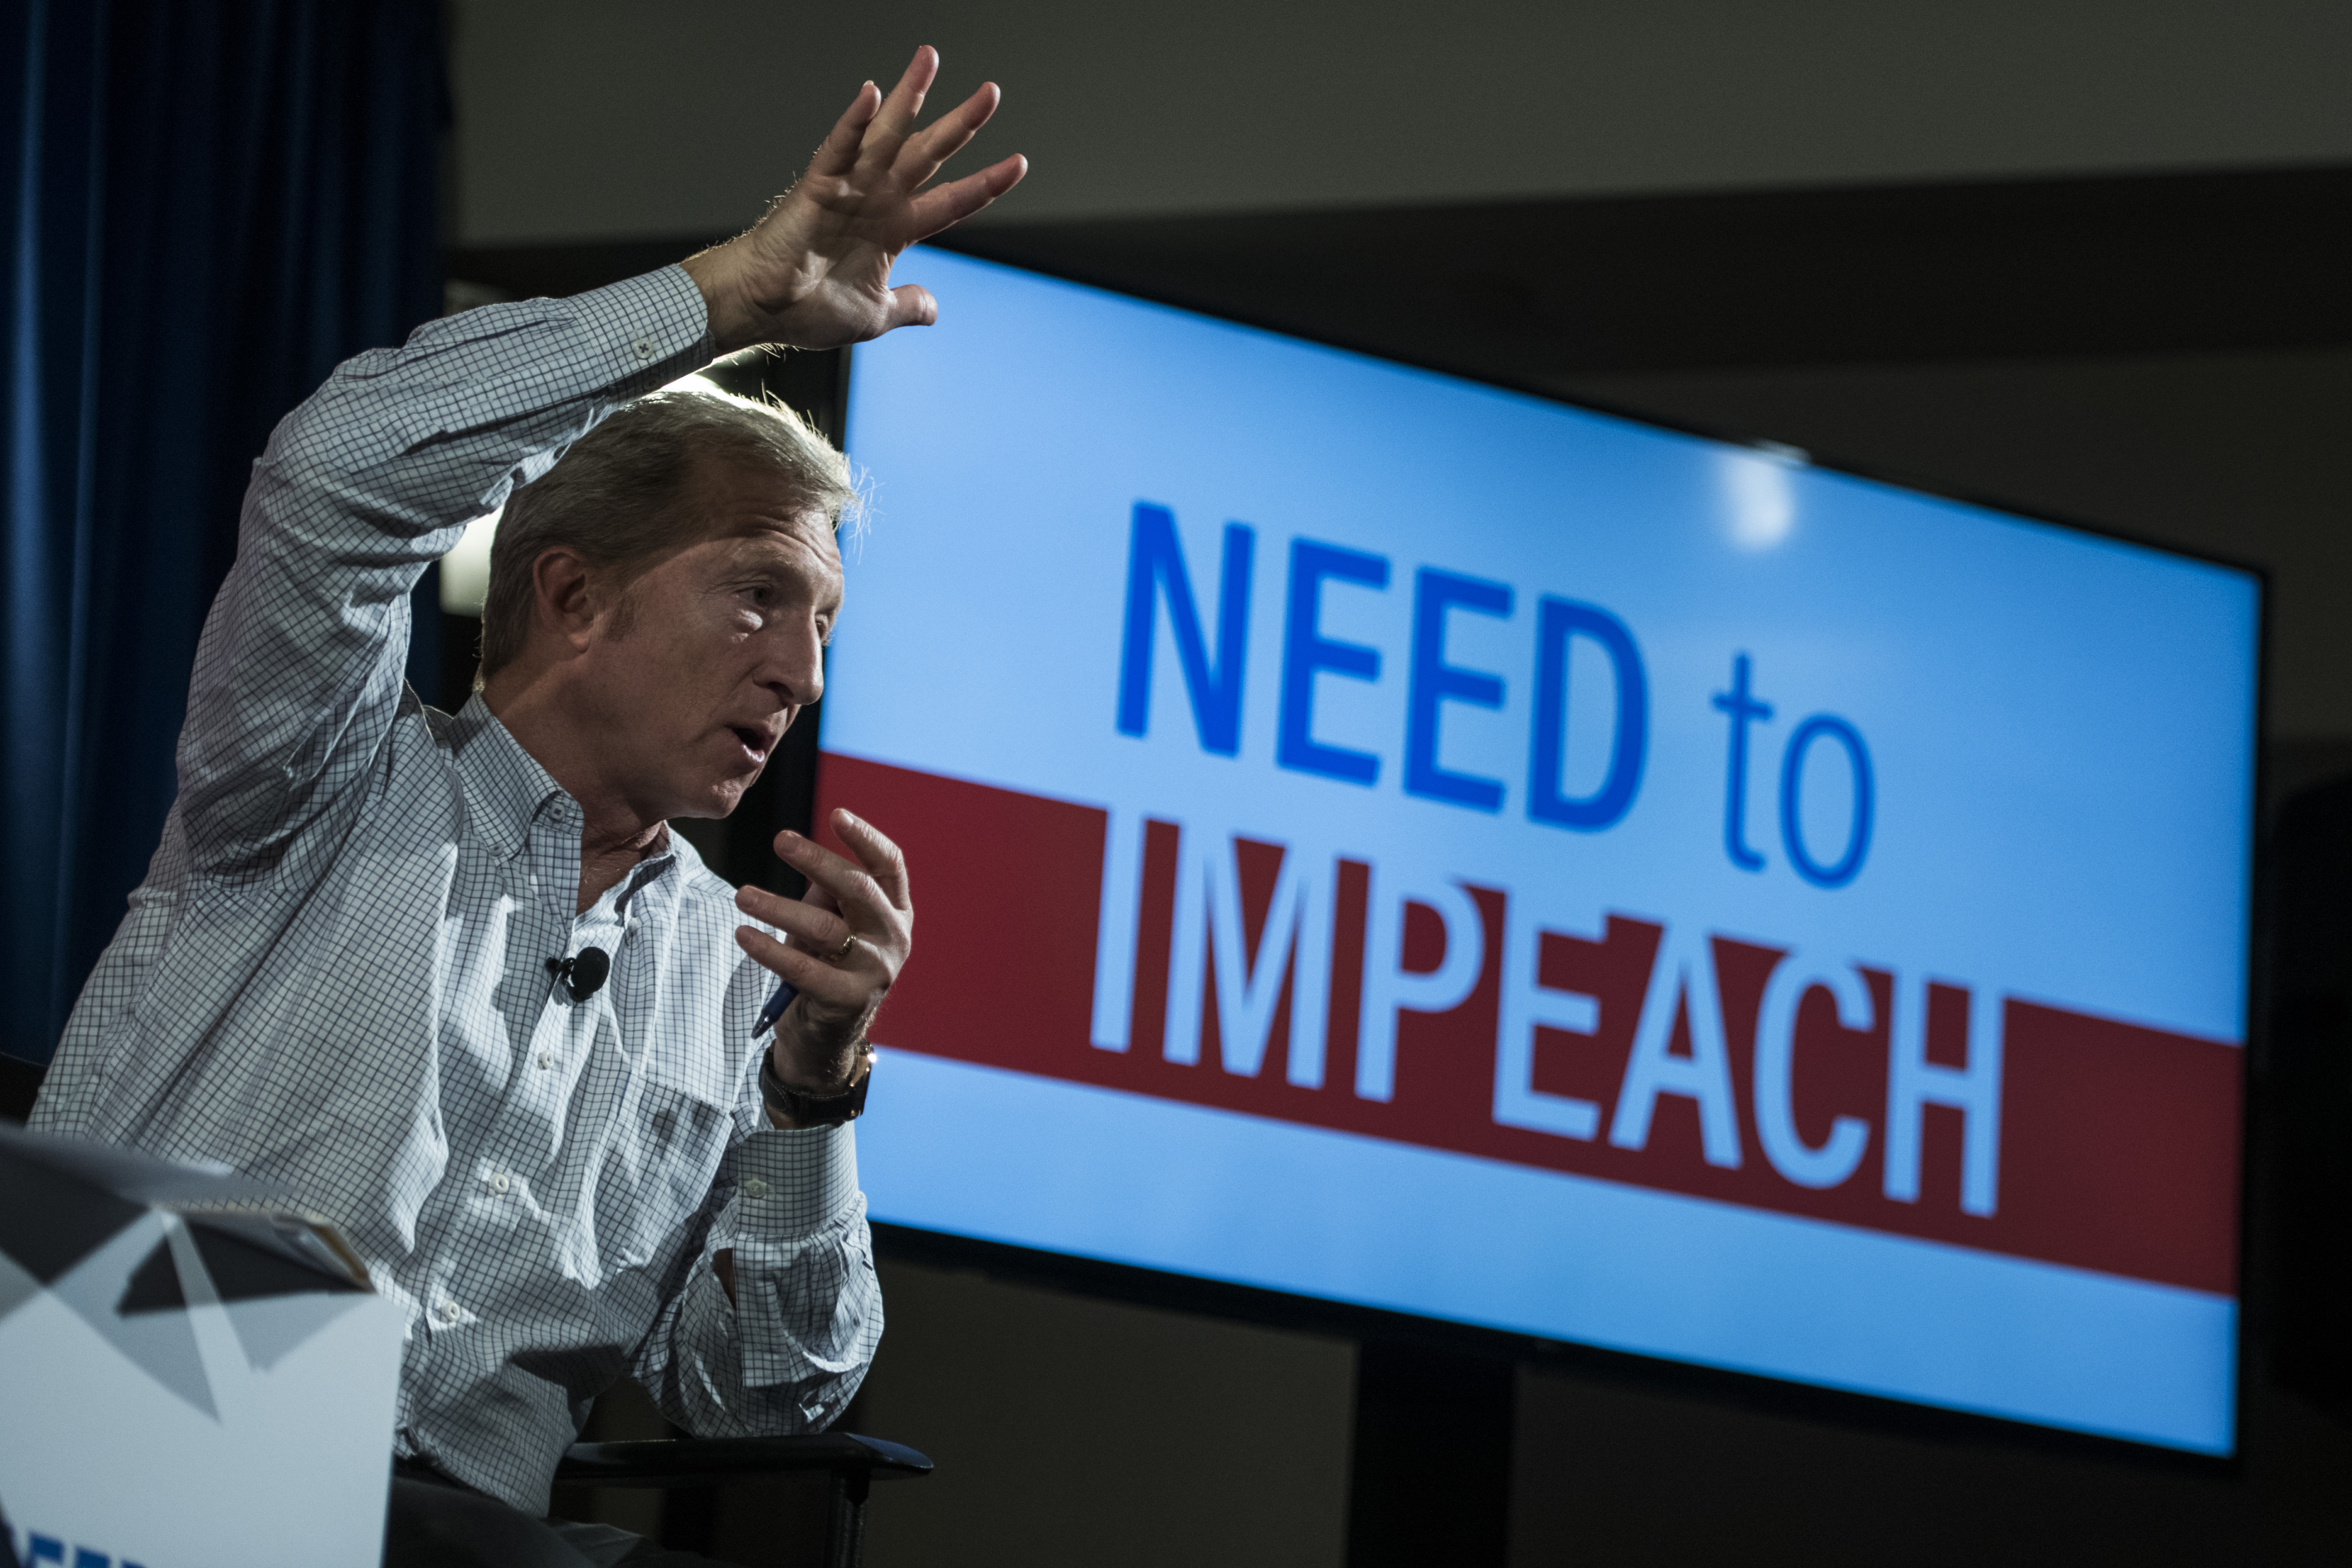 US environmental activist and Democrat Tom Steyer speaks during a Town Hall meeting In the Need to Impeach President Donald Trump in New York on January 29, 2018. (Photo by JEWEL SAMAD/AFP/Getty Images)